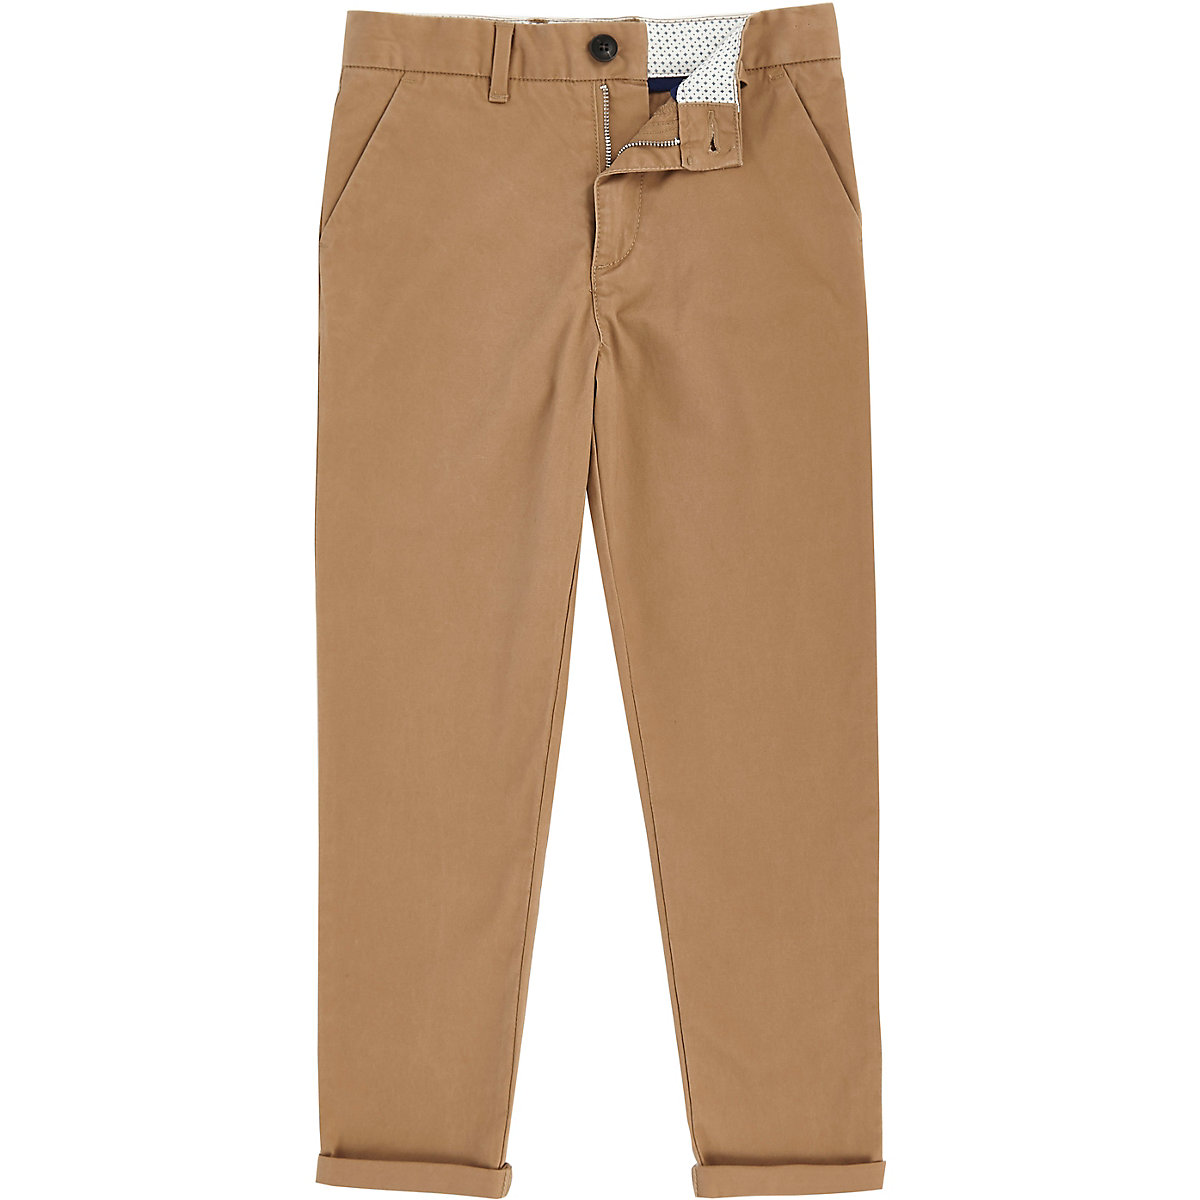 Boys tan slim fit chino trousers